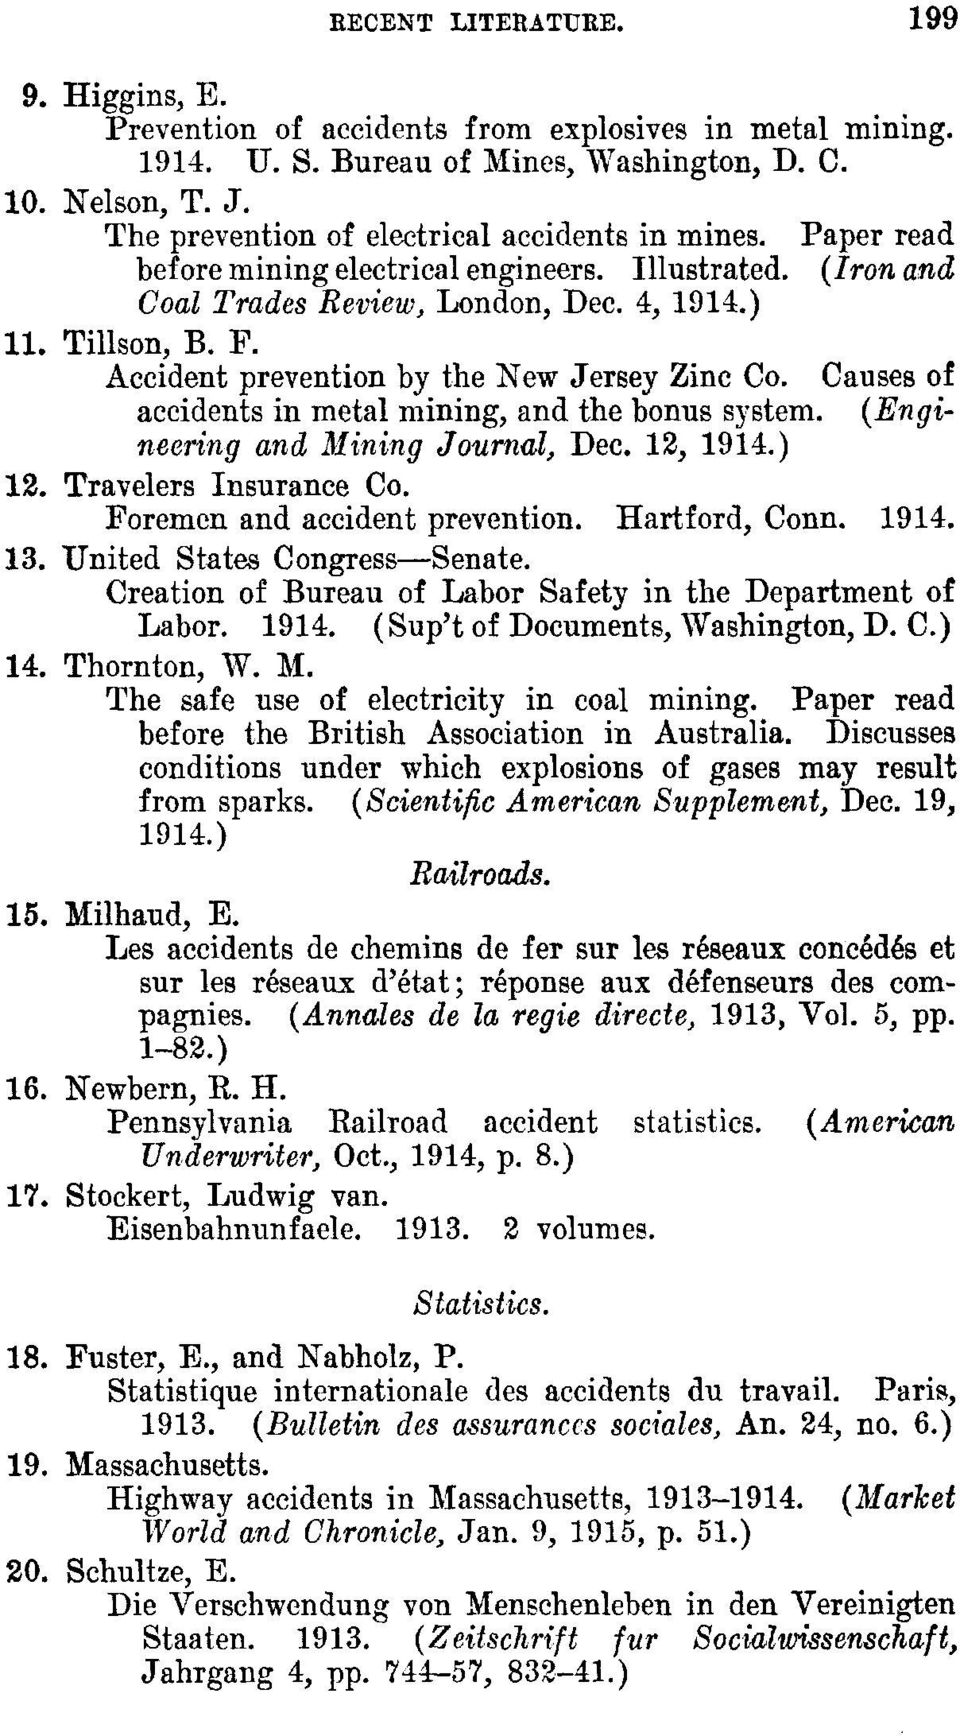 Accident prevention by the :New Jersey Zinc Co. Causes of accidents in metal mining, and the bonus system. (Engineering and Mining Journal, Dec. 12, 1914.) 12. Travelers Insurance Co.